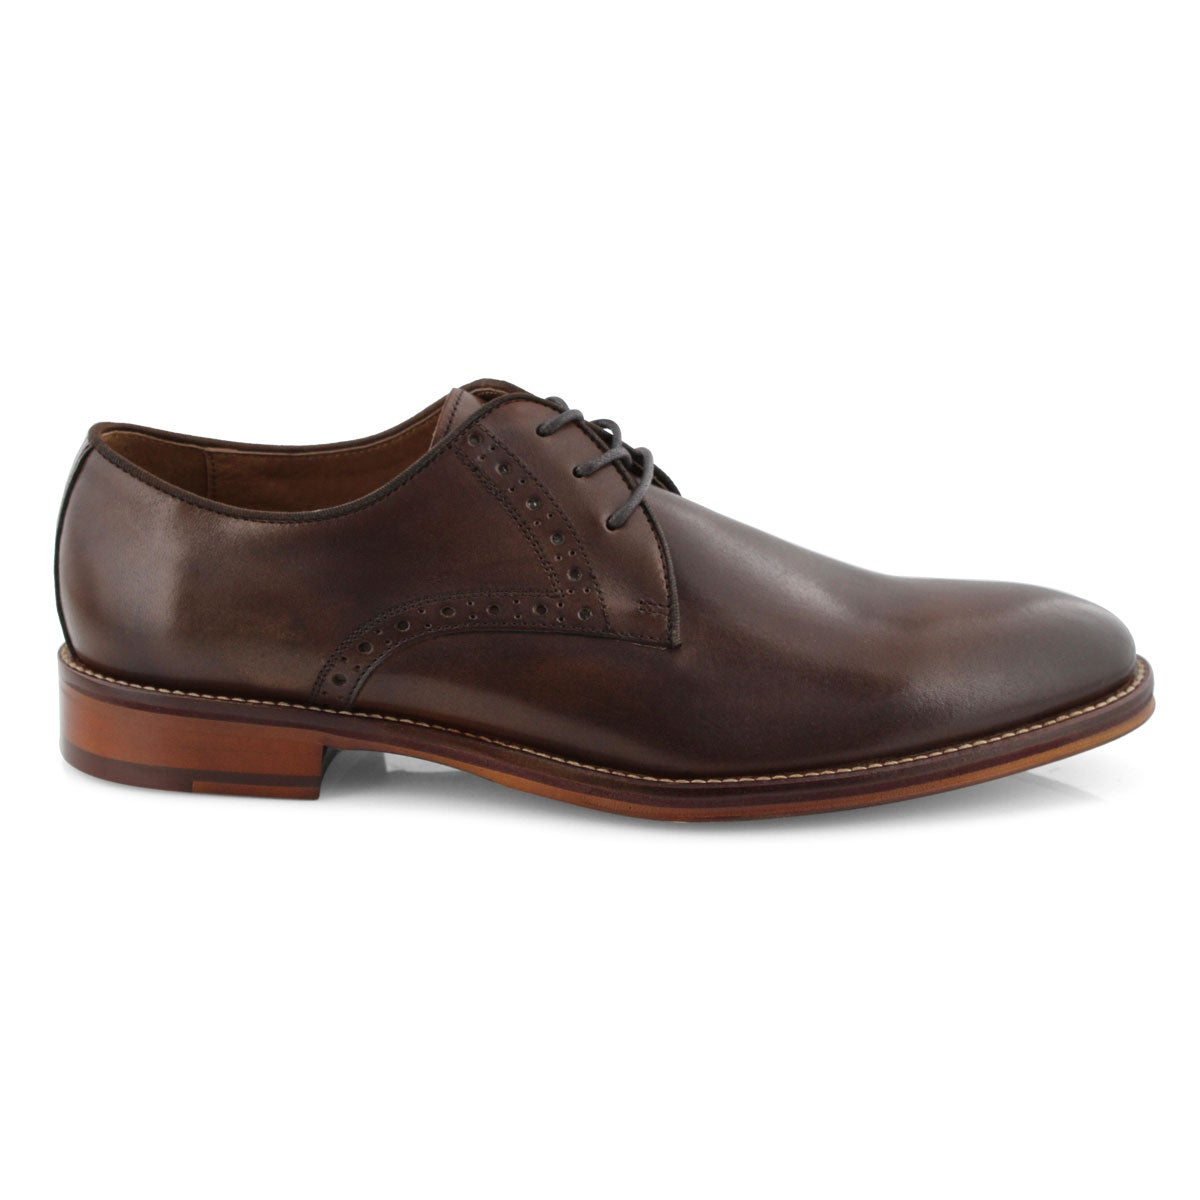 Mns Conard Plain Toe mhgny dress oxford